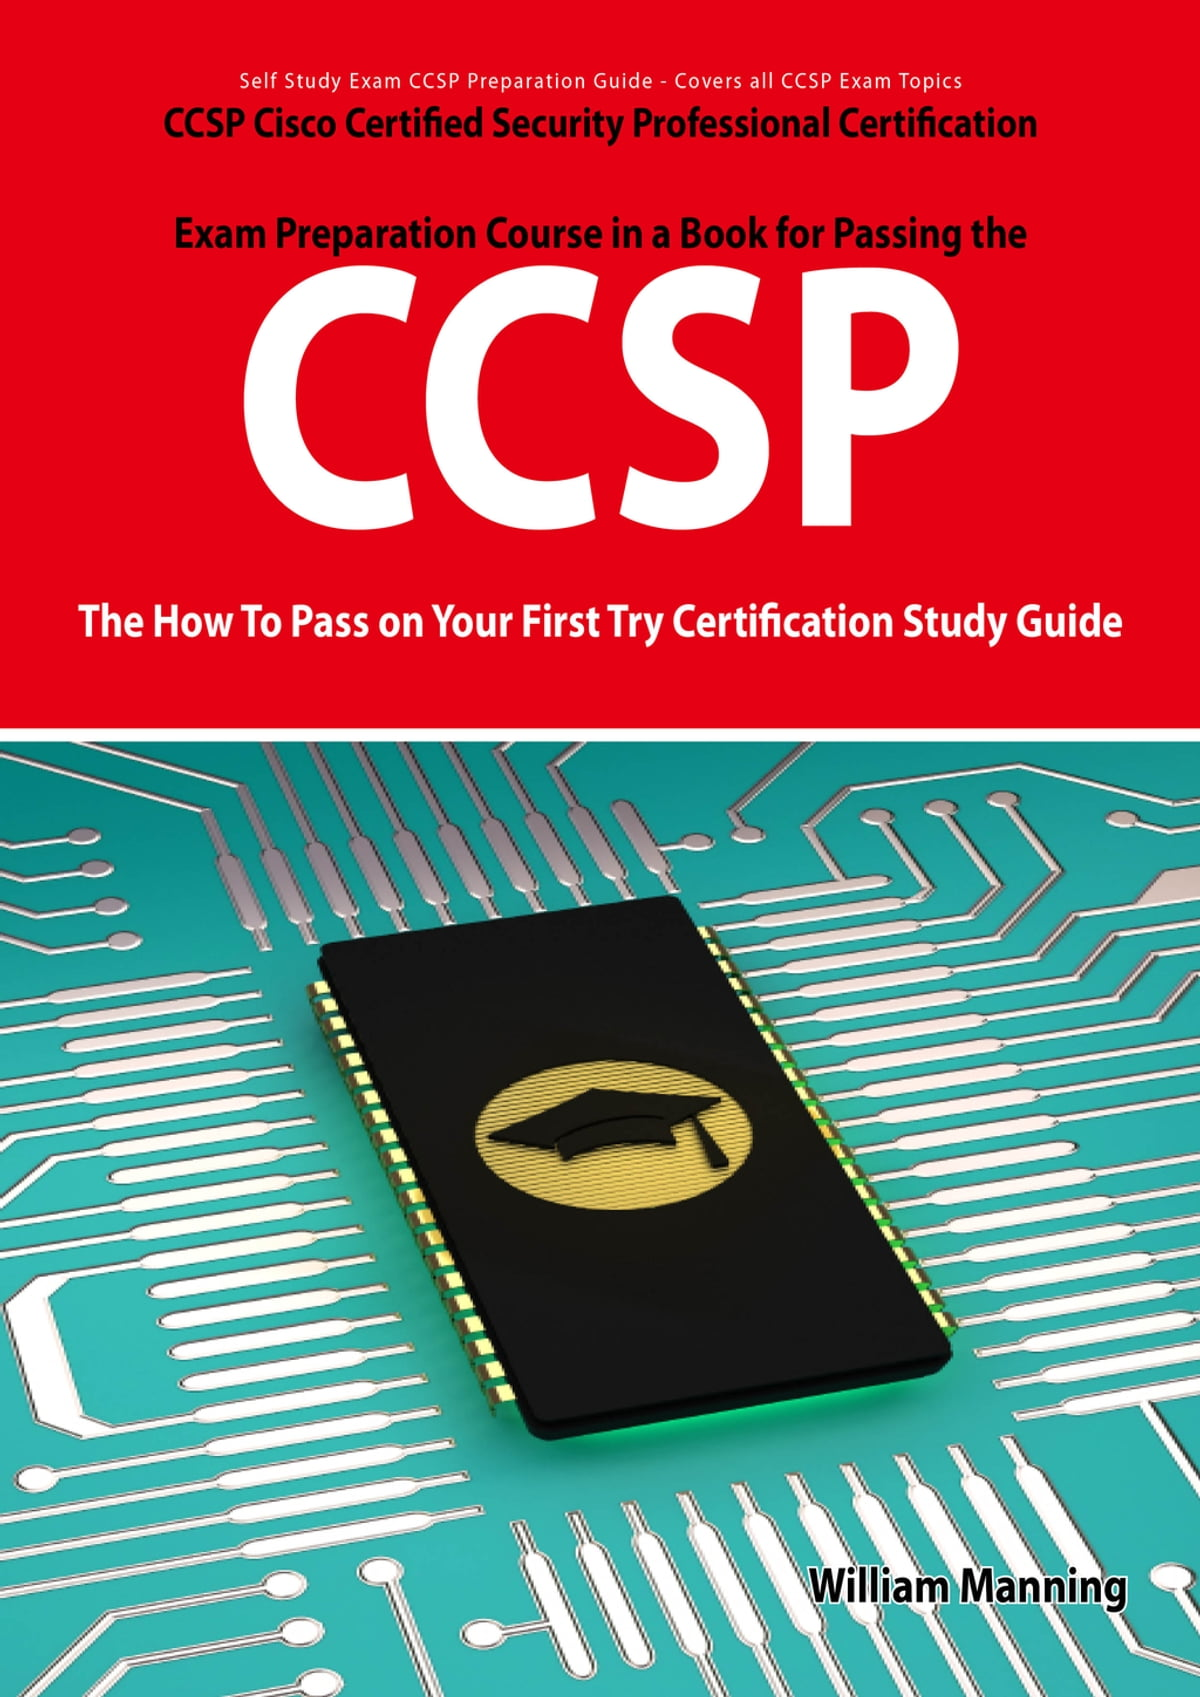 Ccsp cisco certified security professional certification exam ccsp cisco certified security professional certification exam preparation course in a book for passing the ccsp exam the how to pass on your first try xflitez Gallery